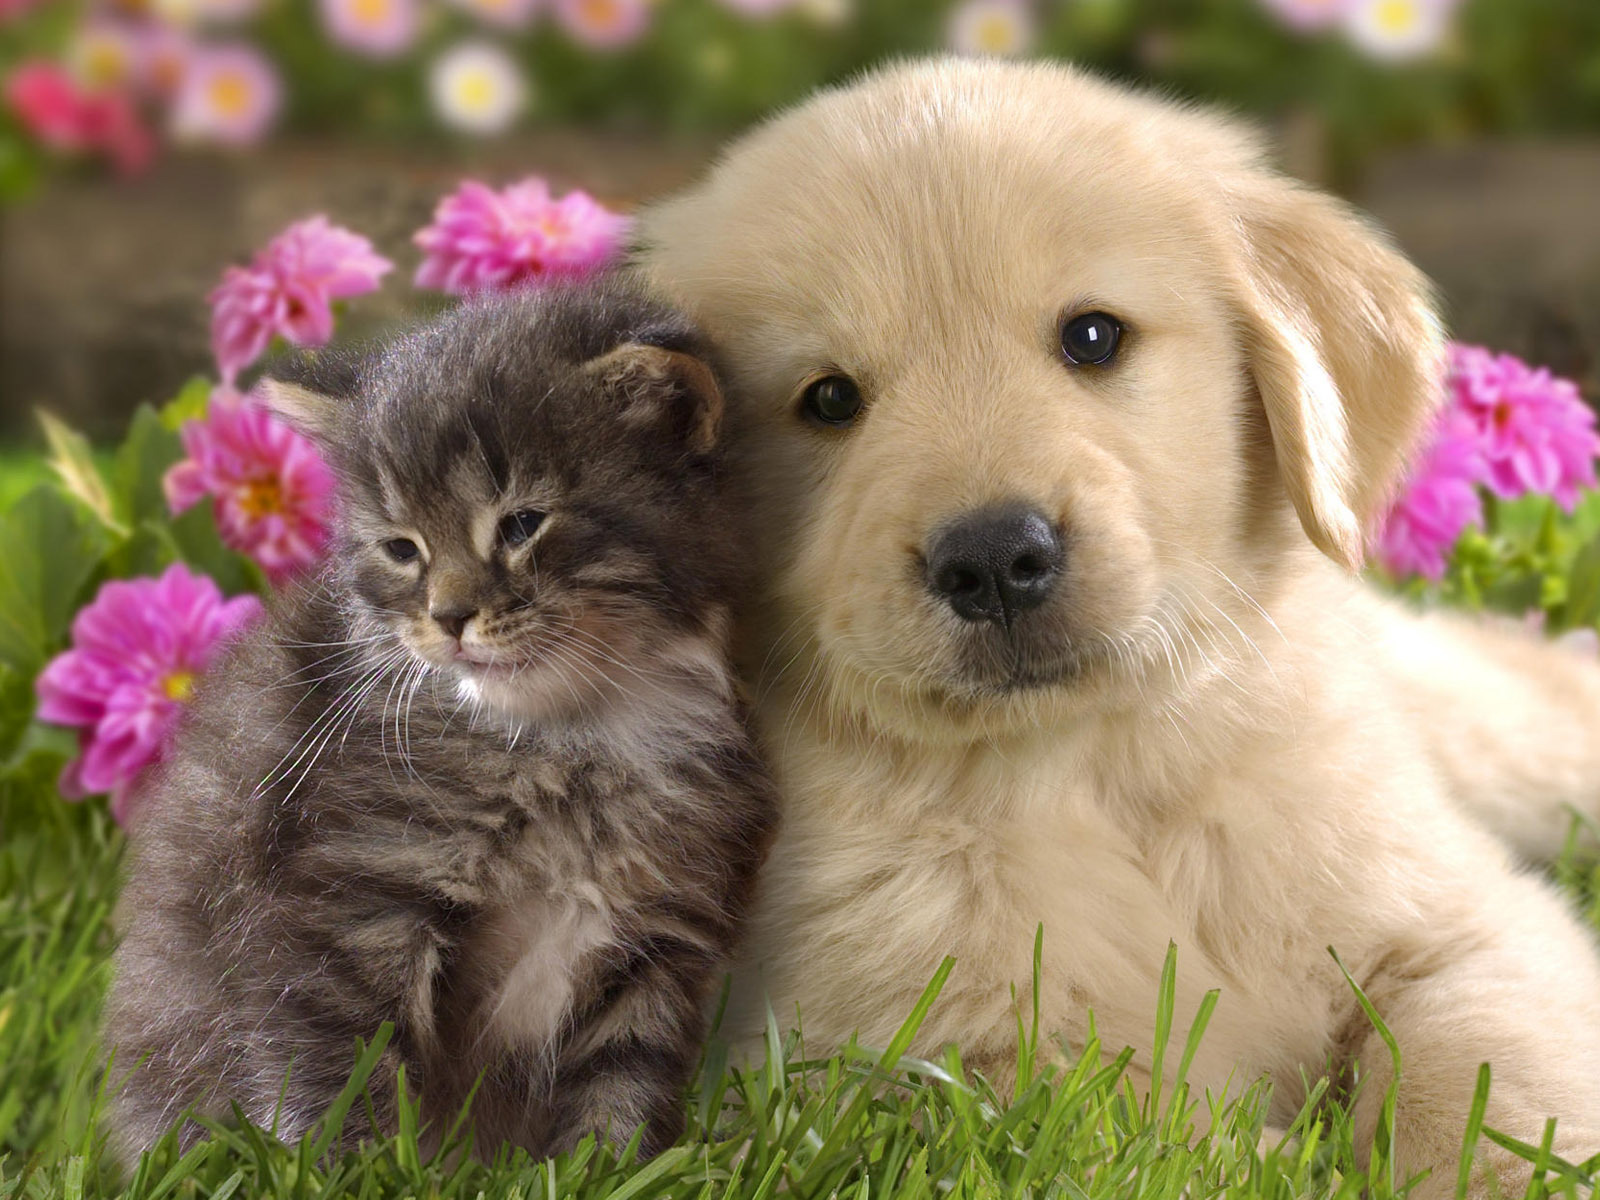 http://4.bp.blogspot.com/-o-XNoBwppsI/UE3Q0nyr_YI/AAAAAAAAEaQ/b_6rCB5_xKU/s1600/Cute-Cat-and-Dog-Friendship-HD-Wallpaper--NatureWallBase.Blogspot.Com-.jpg